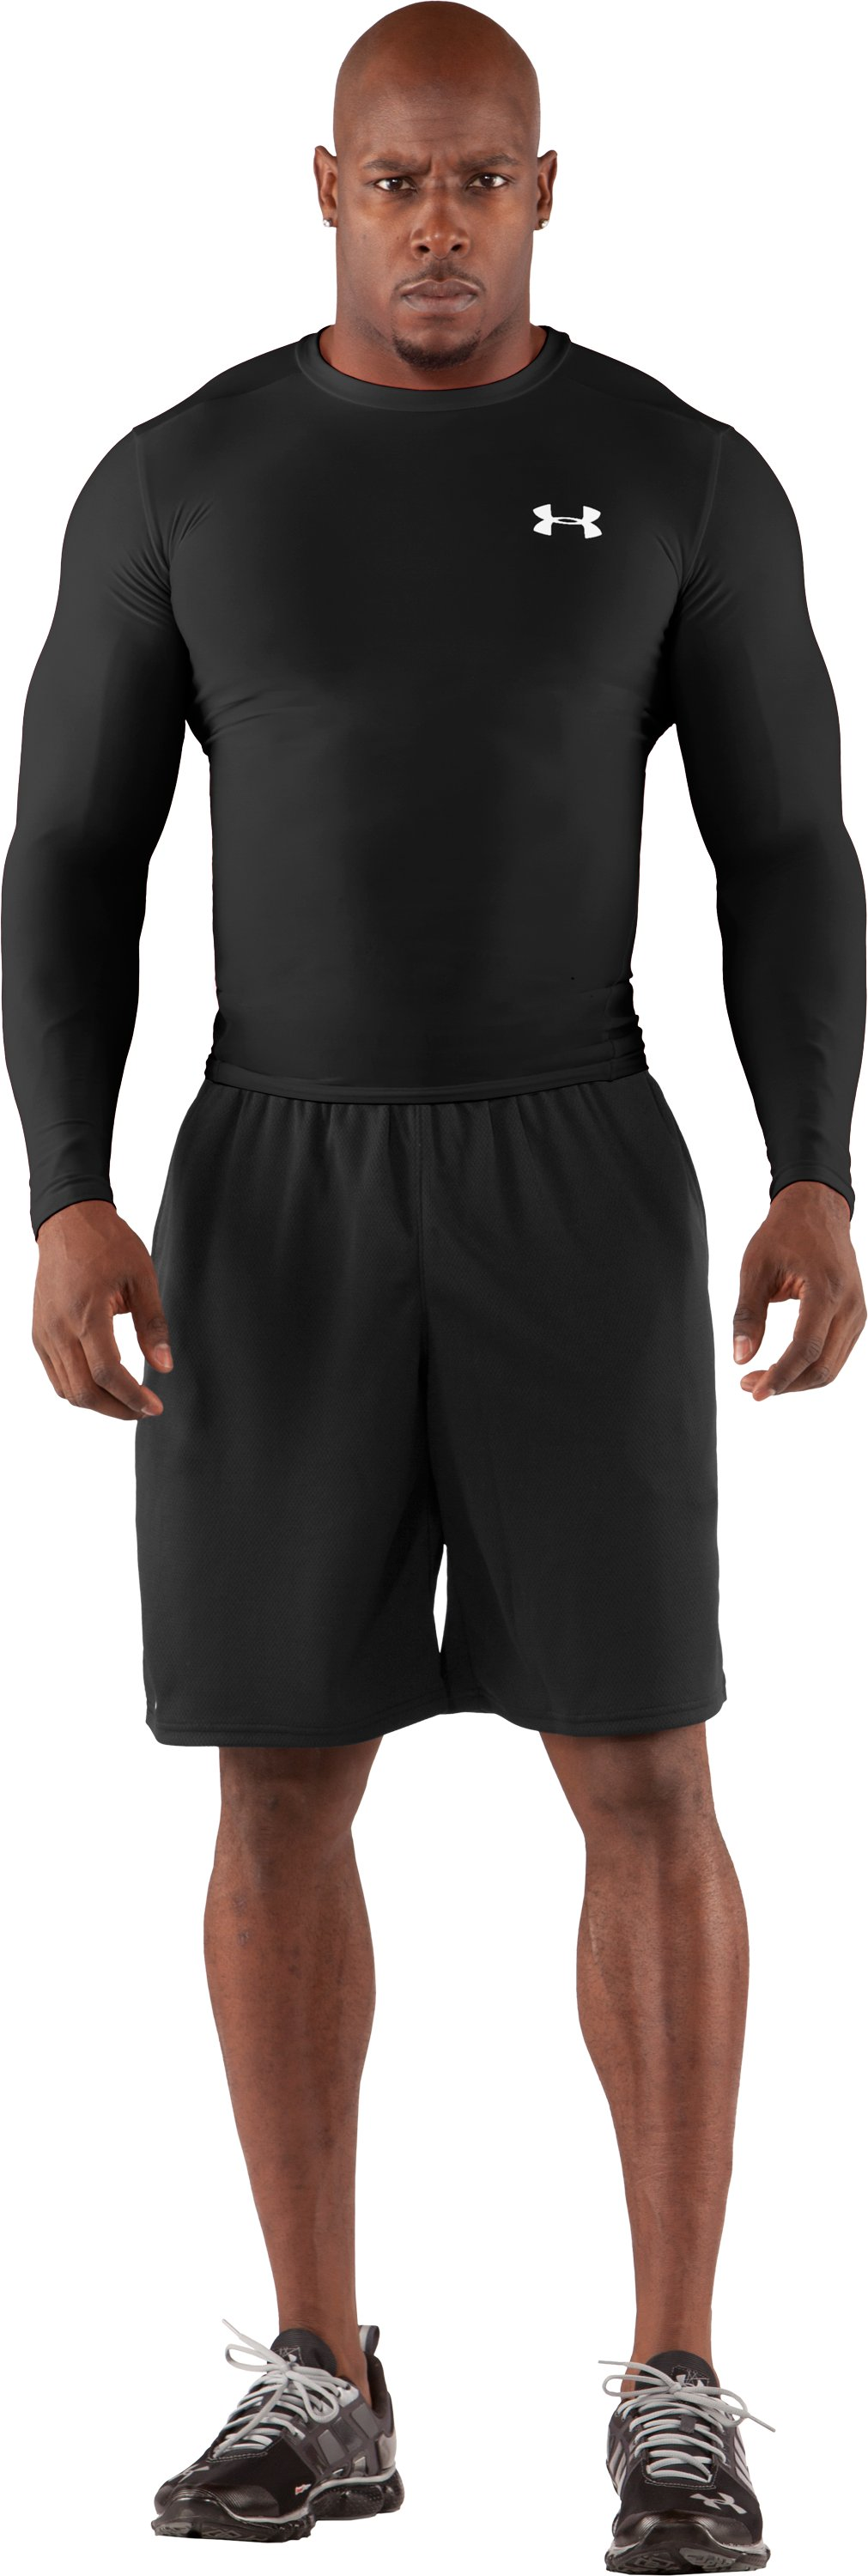 Men's HeatGear® Compression Long Sleeve T-Shirt, Black